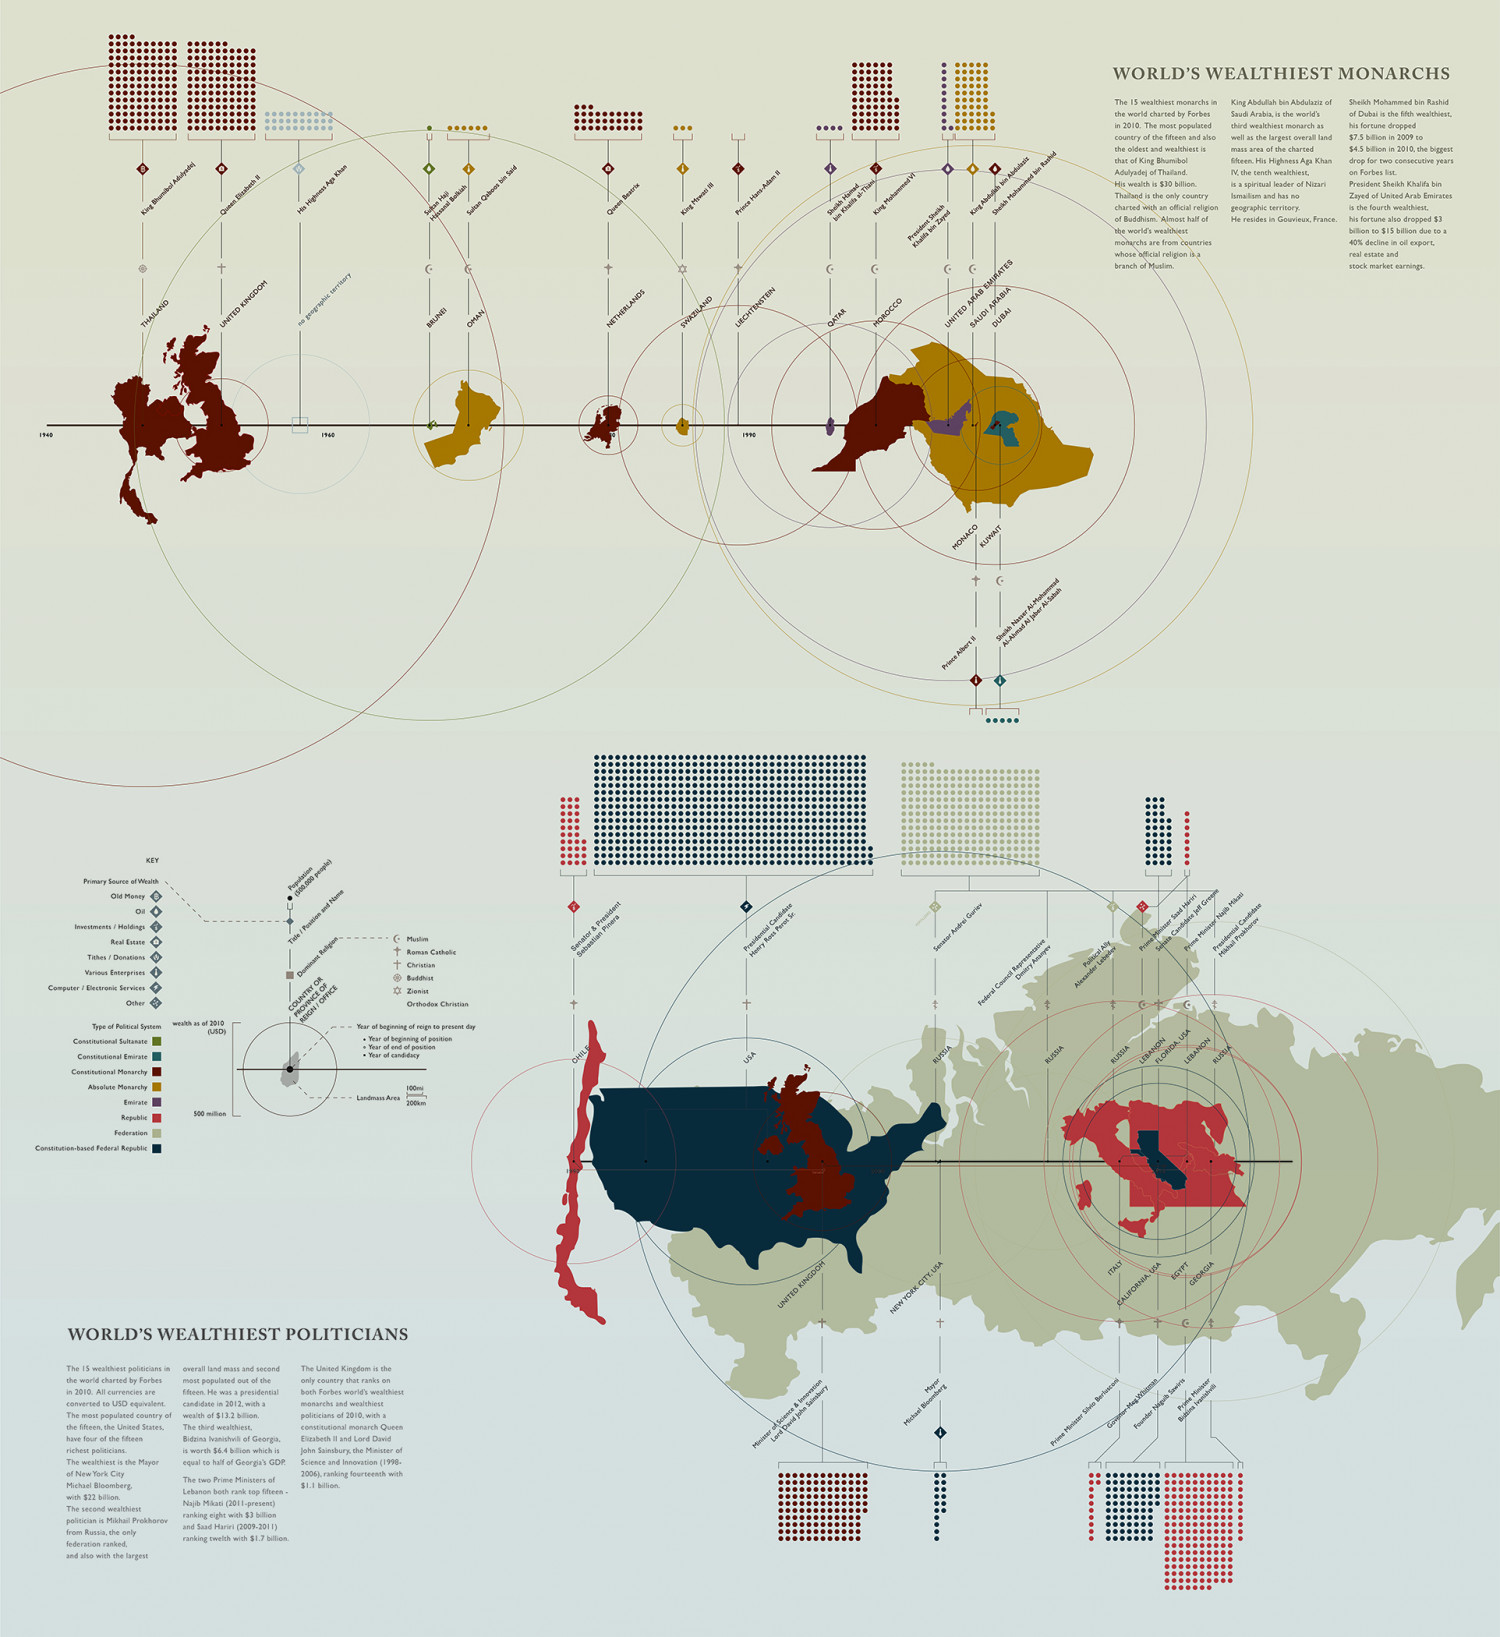 World's Wealthiest Monarchs & Politicians Infographic